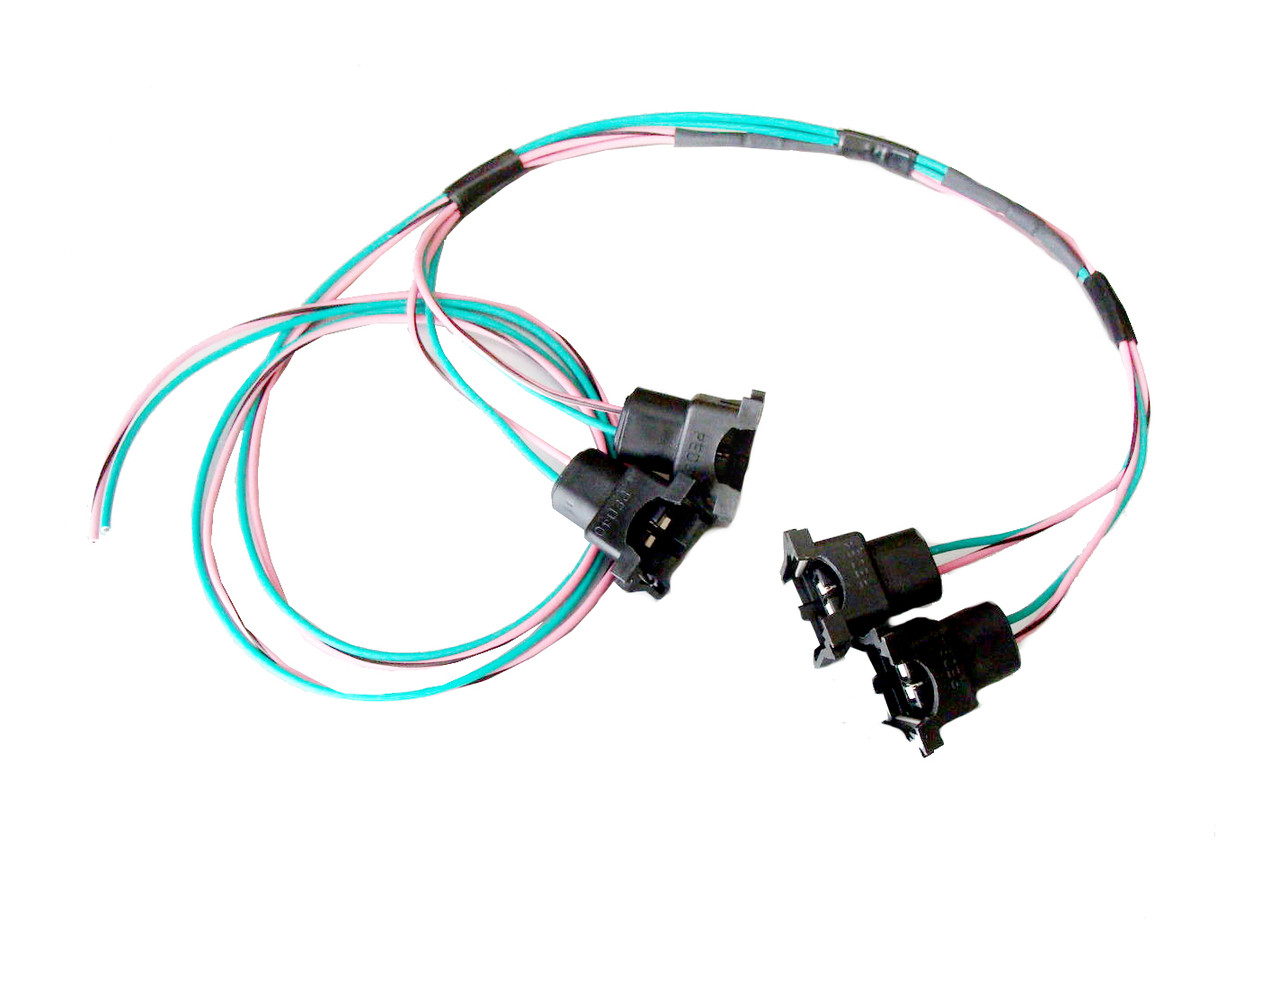 hight resolution of 85 95 tpi lt1 fuel injector connector wiring harness assembly lh rh hawksmotorsports com wire harness